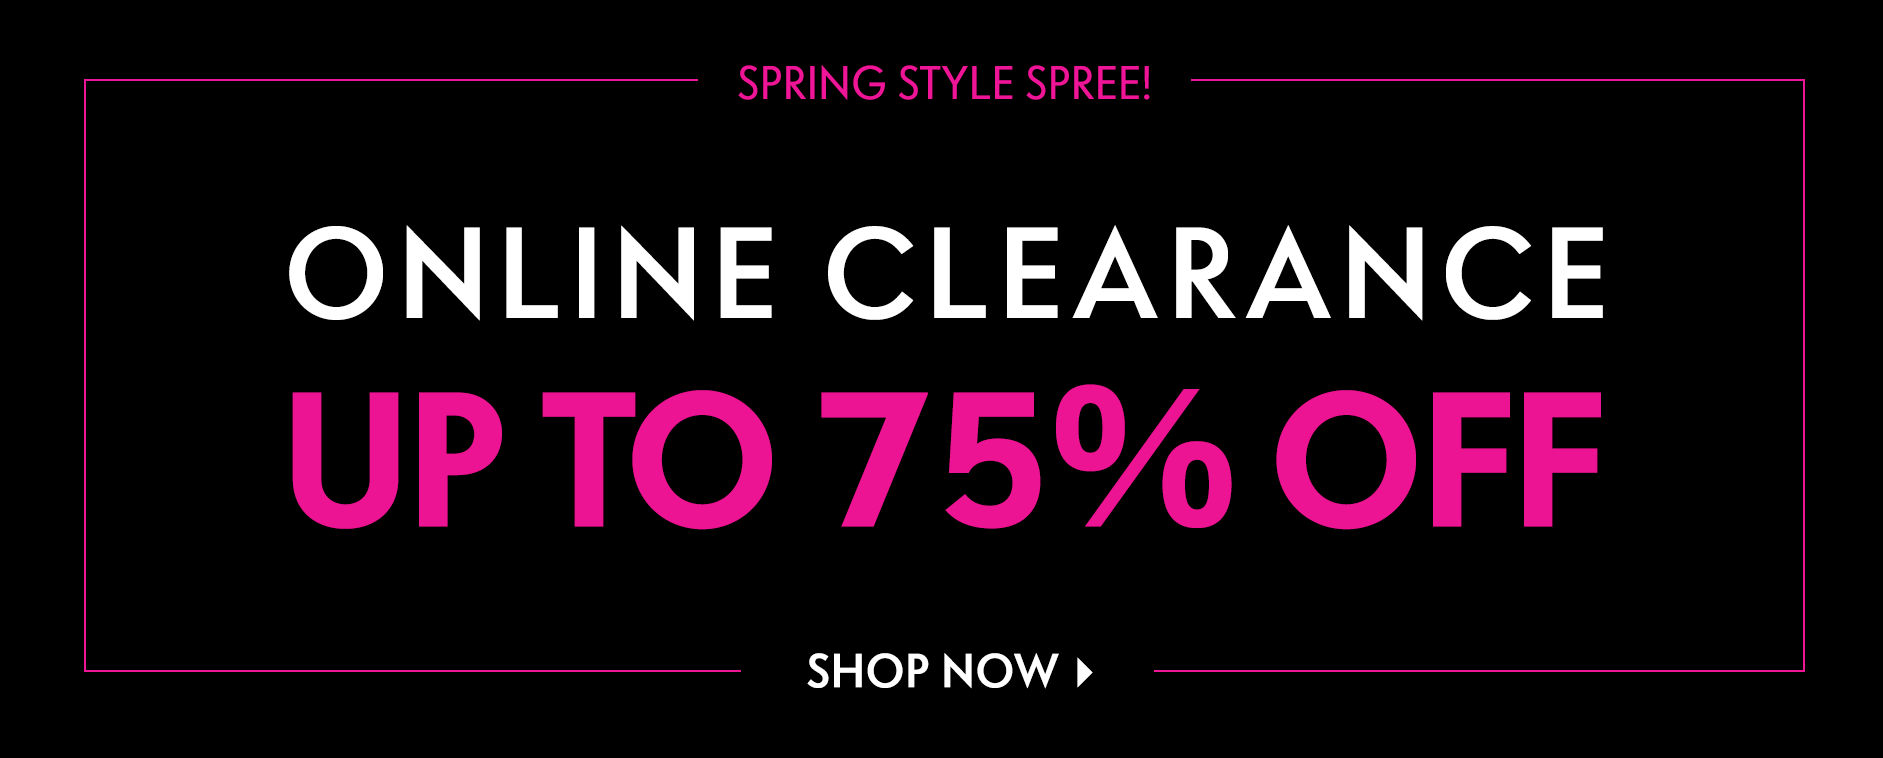 Spring style spree! Online Clearance Up to 75% off